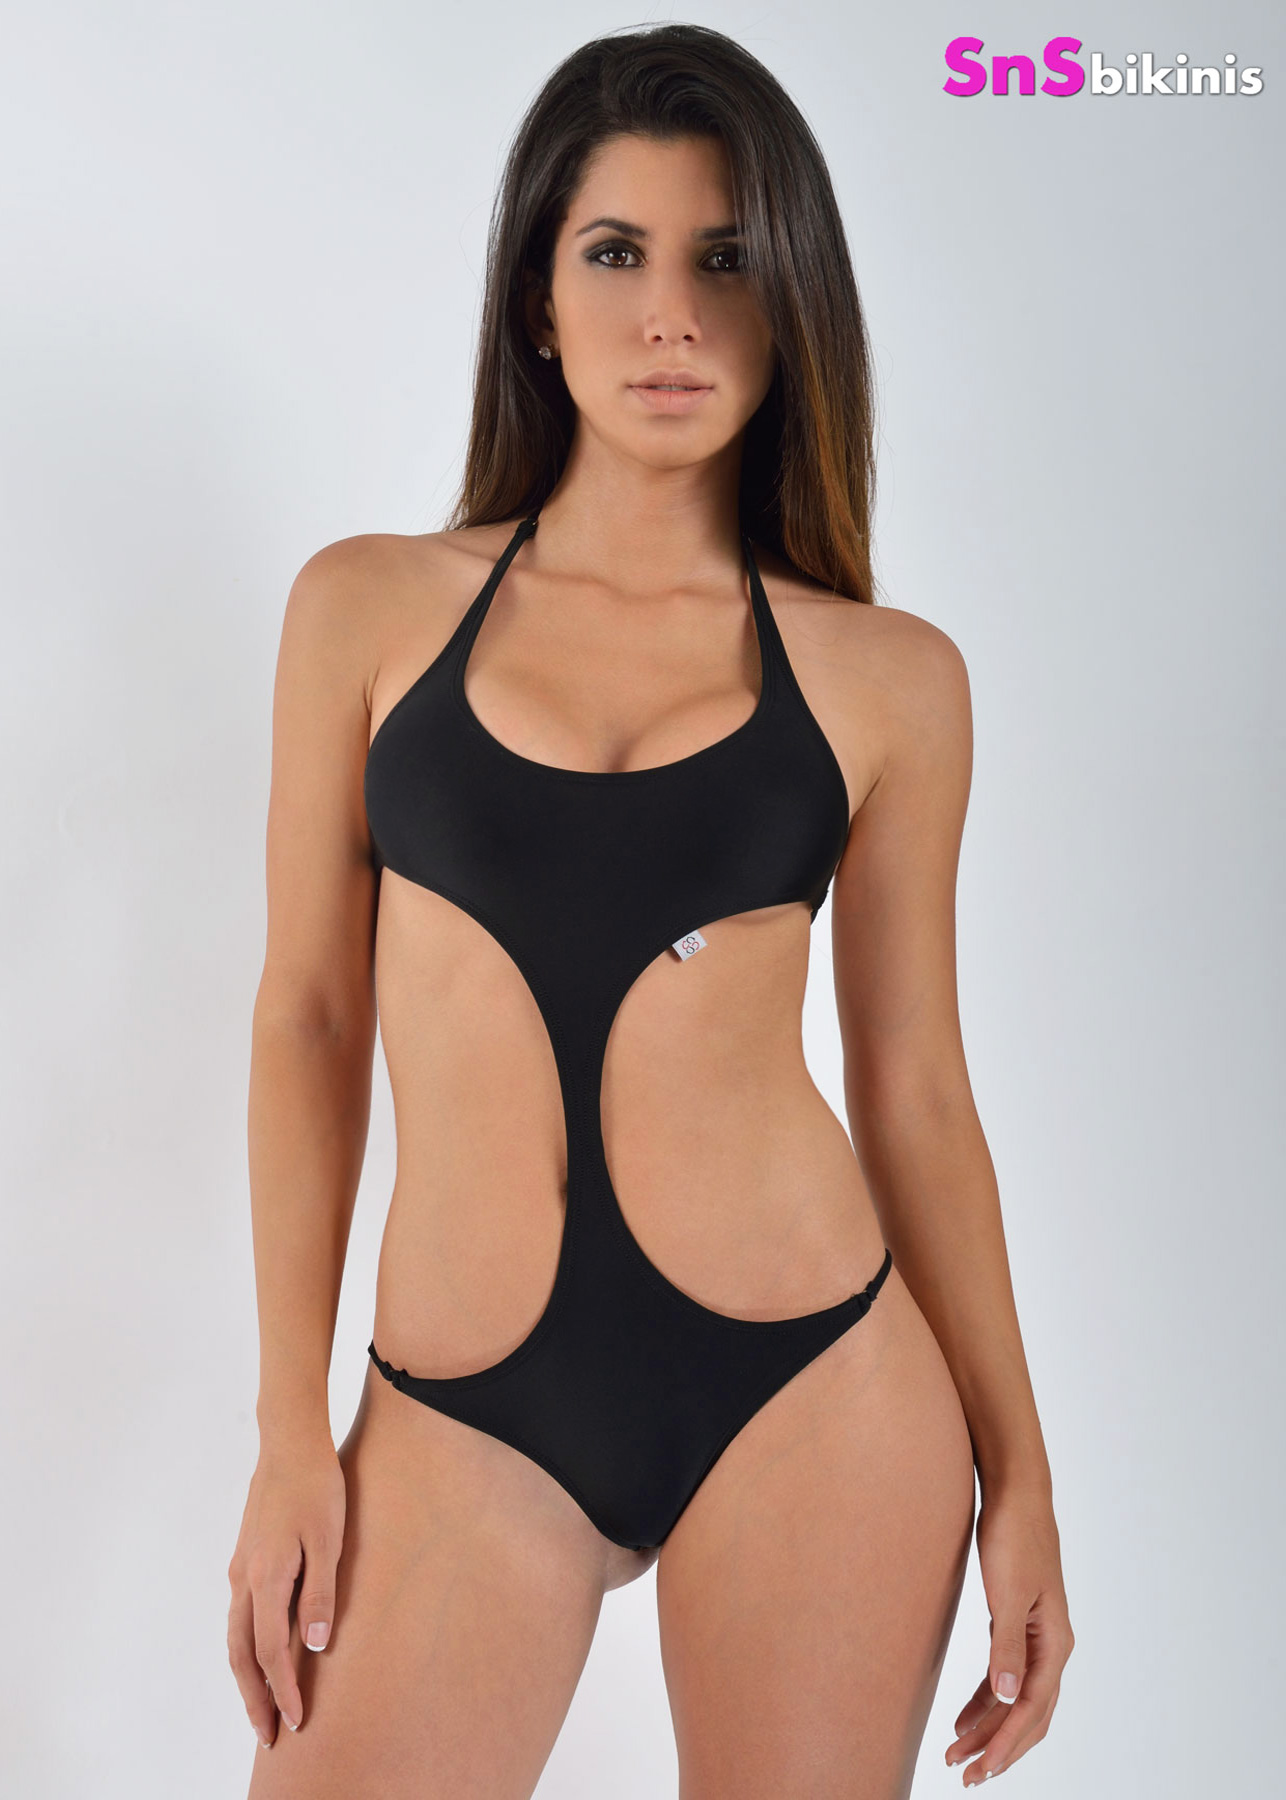 Nikita Very Sexy Thong Swimsuit 62 00 Snsbikinis